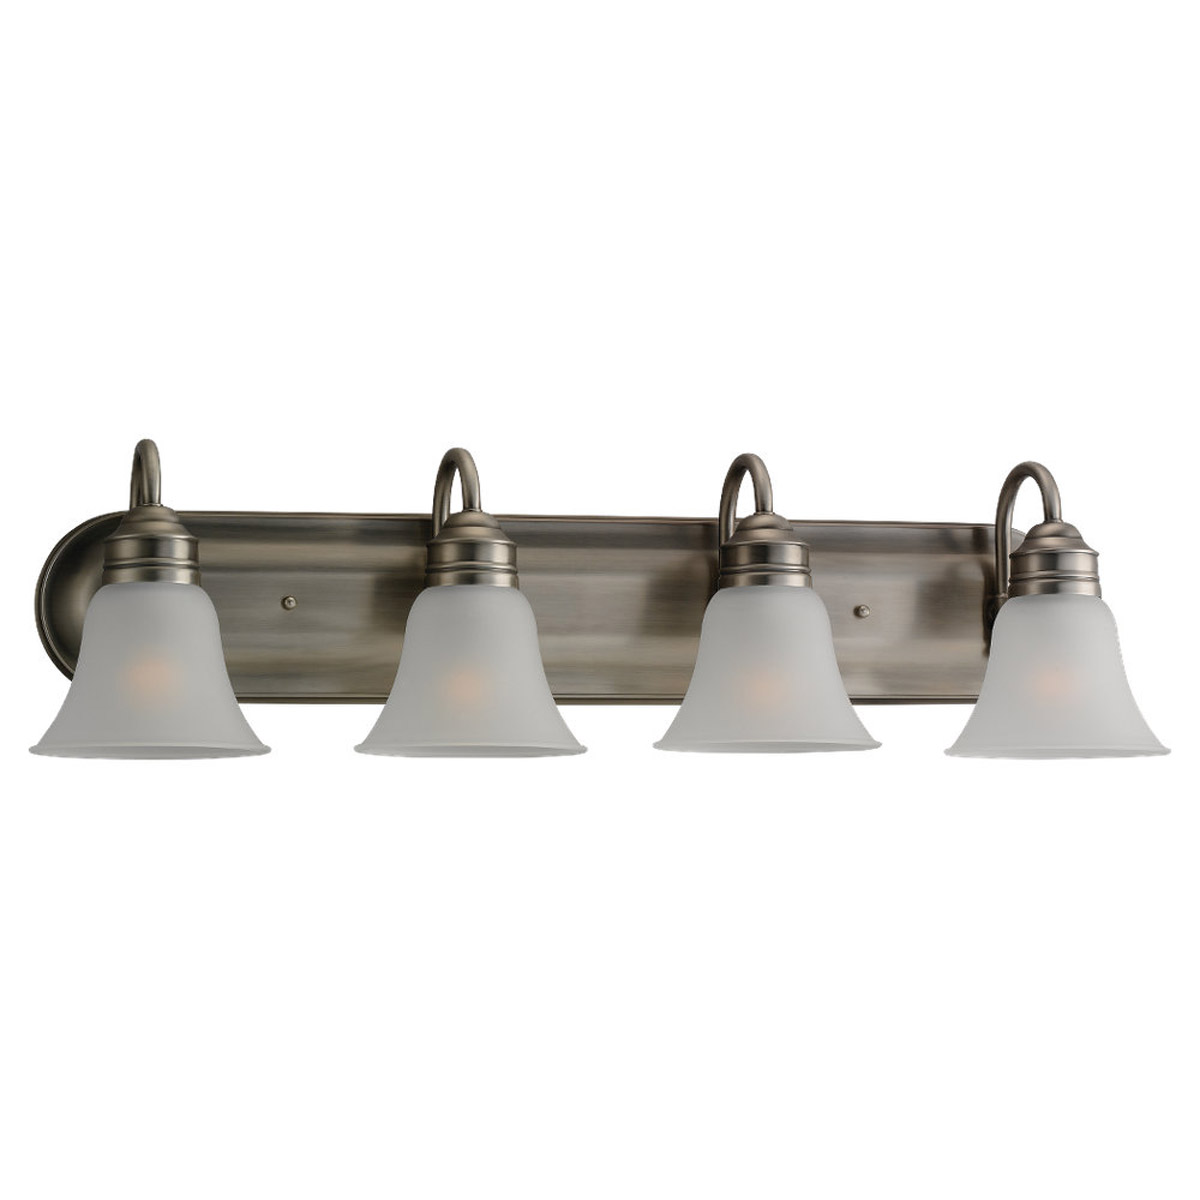 Sea Gull Lighting Gladstone 4 Light Bath Vanity in Antique Brushed Nickel 49853BLE-965